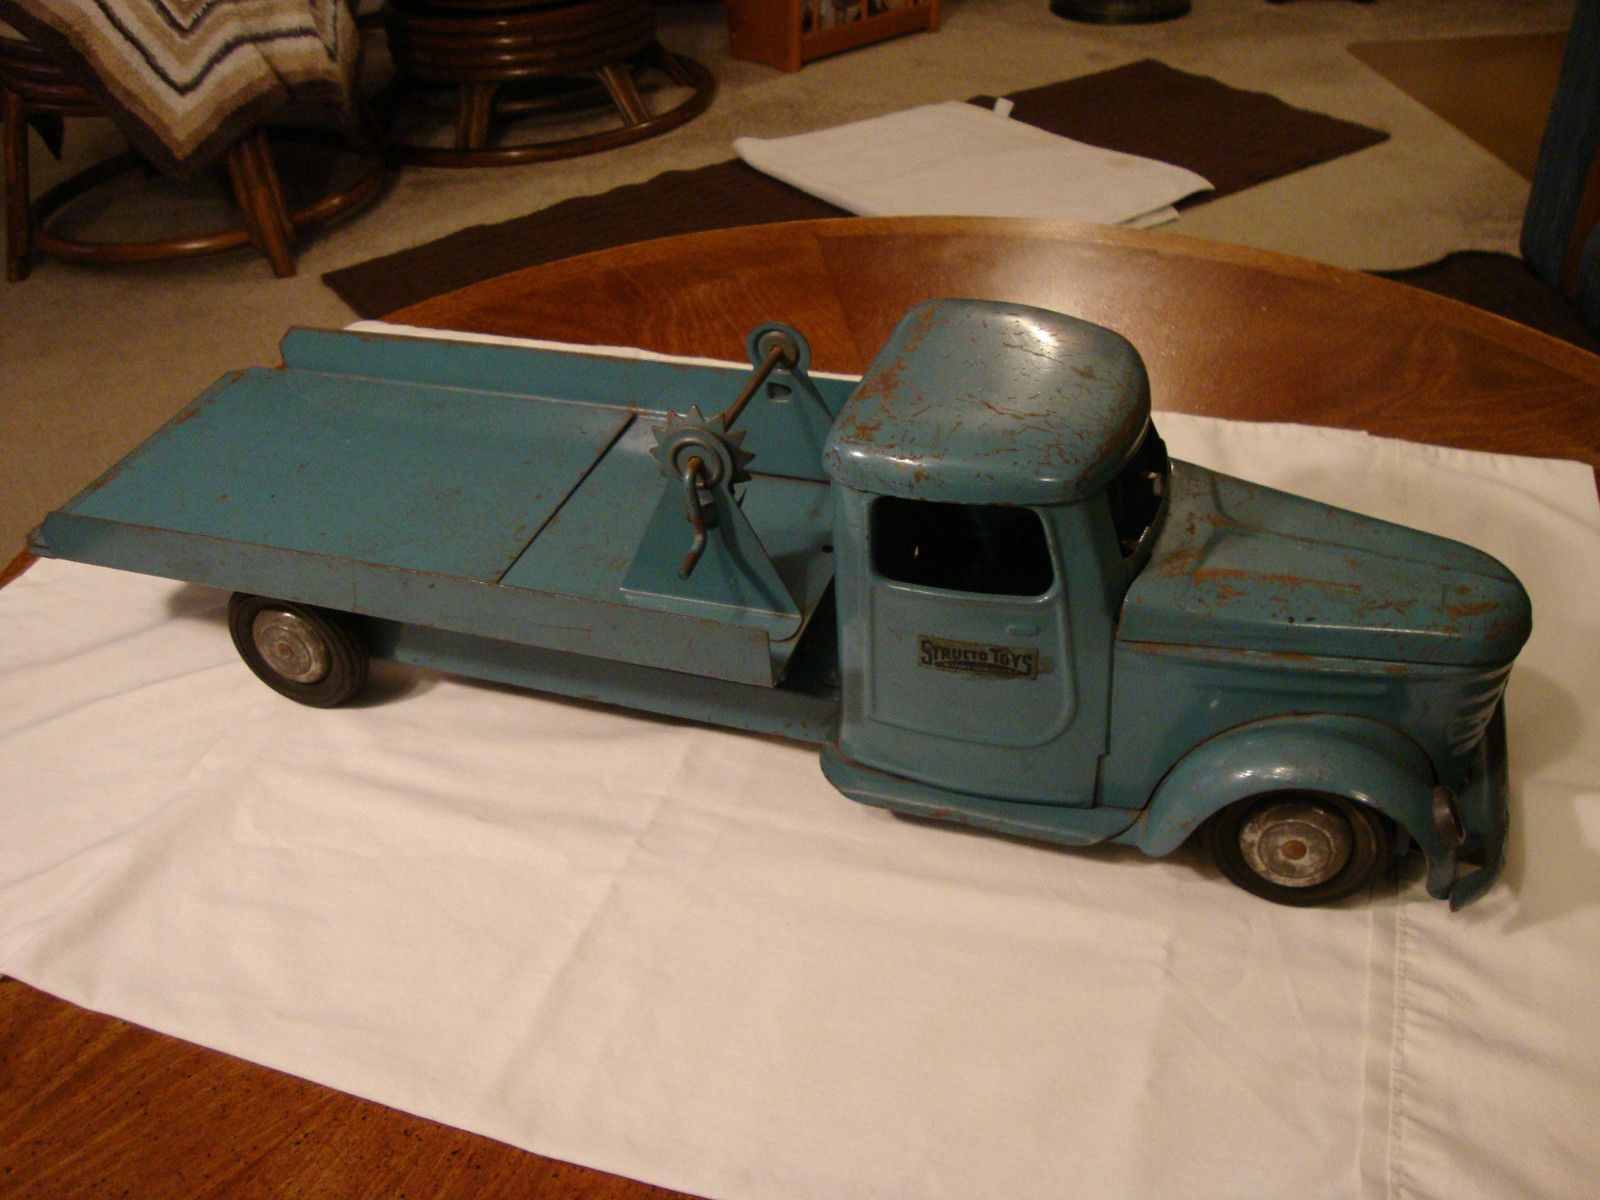 Vintage 1950's Structo Pressed Steel Toy Tow Truck Wrecker Flat Bed Rare Blue https://t.co/DFA9LxlQyX https://t.co/9E3H9Z6ljN